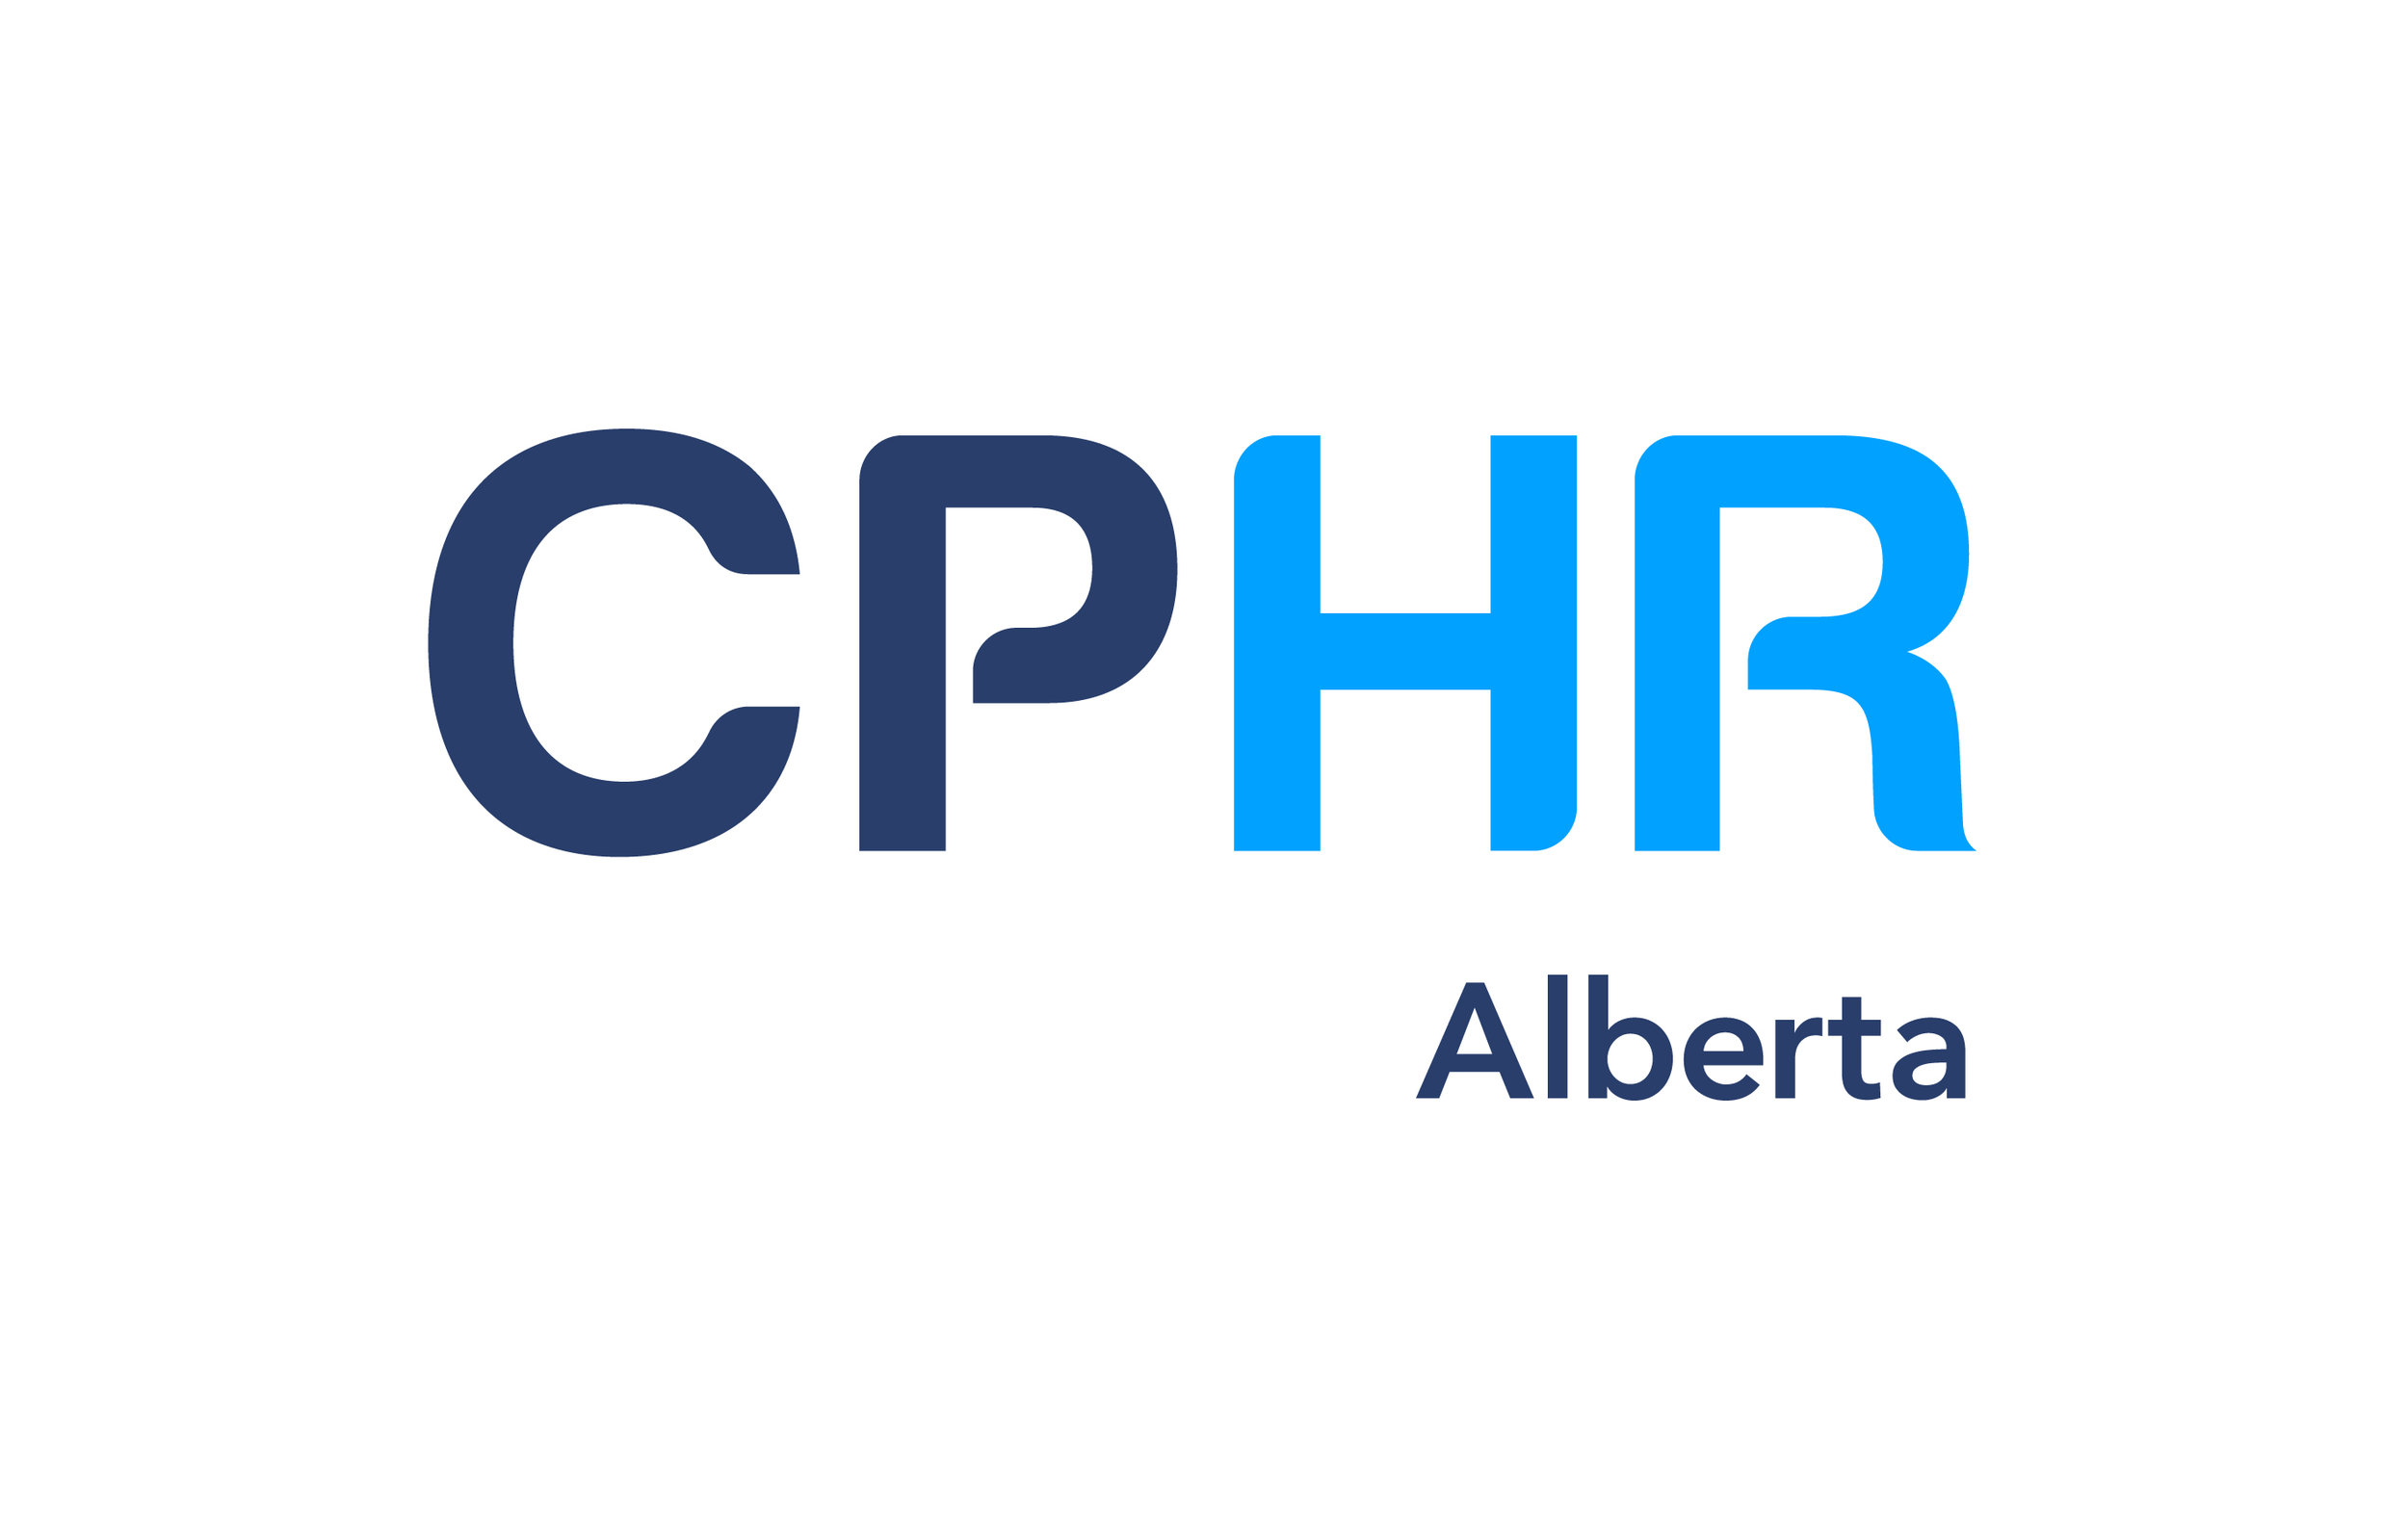 CPHR_logo_AB_primary_2colour_RGB_299_534.jpg